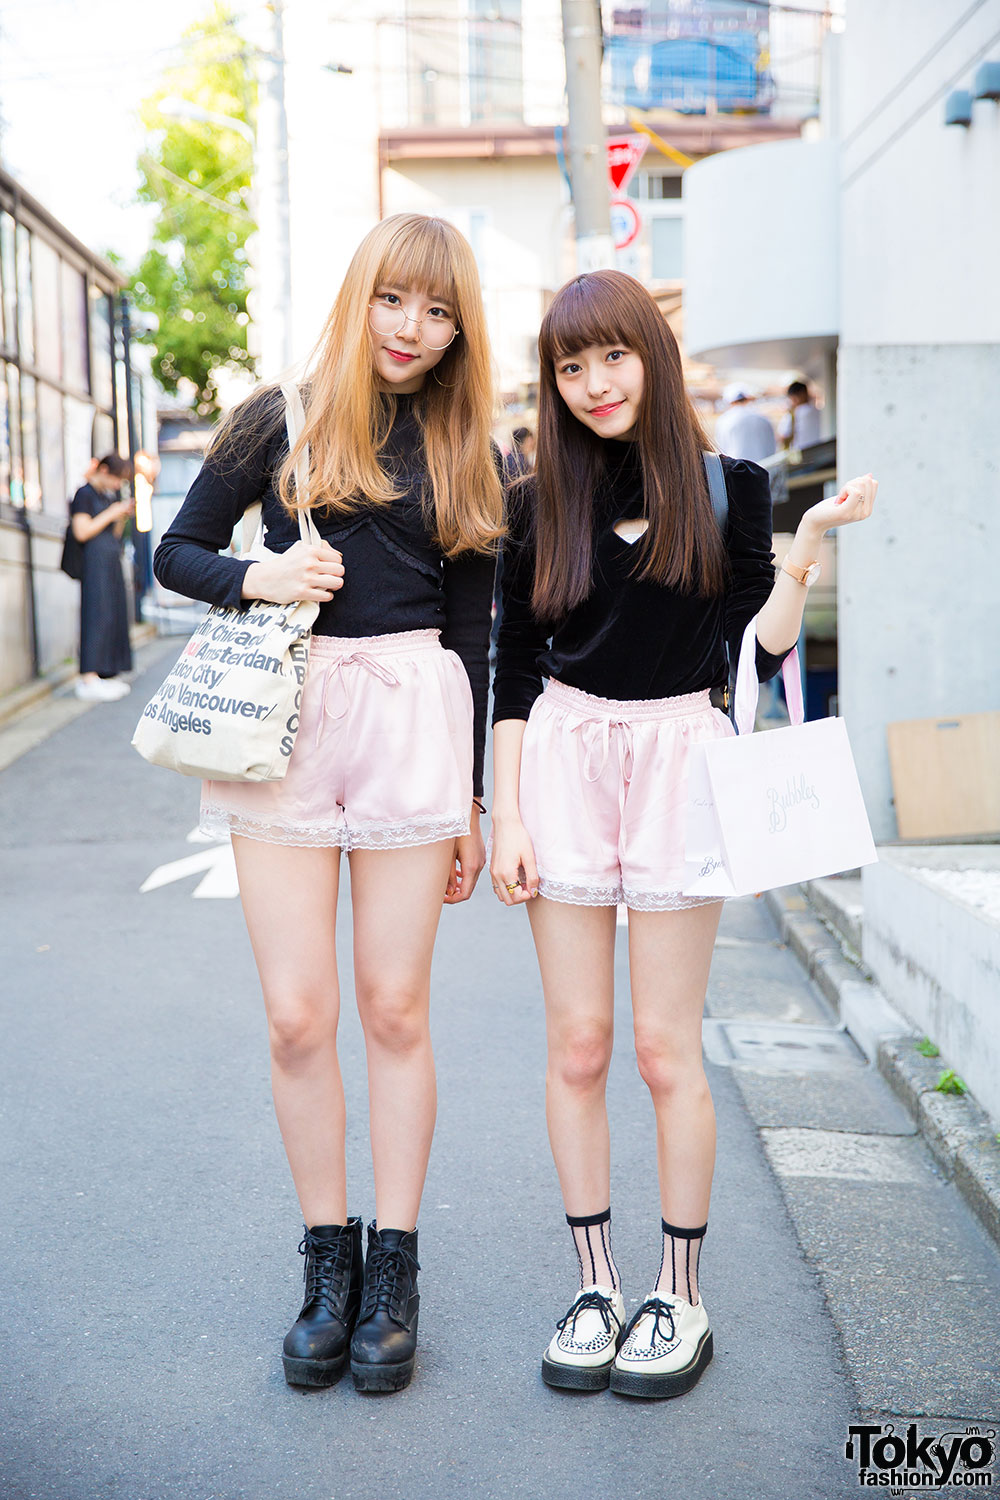 Harajuku Girls In Matching Pink Shorts W/ Bubbles, One Spo